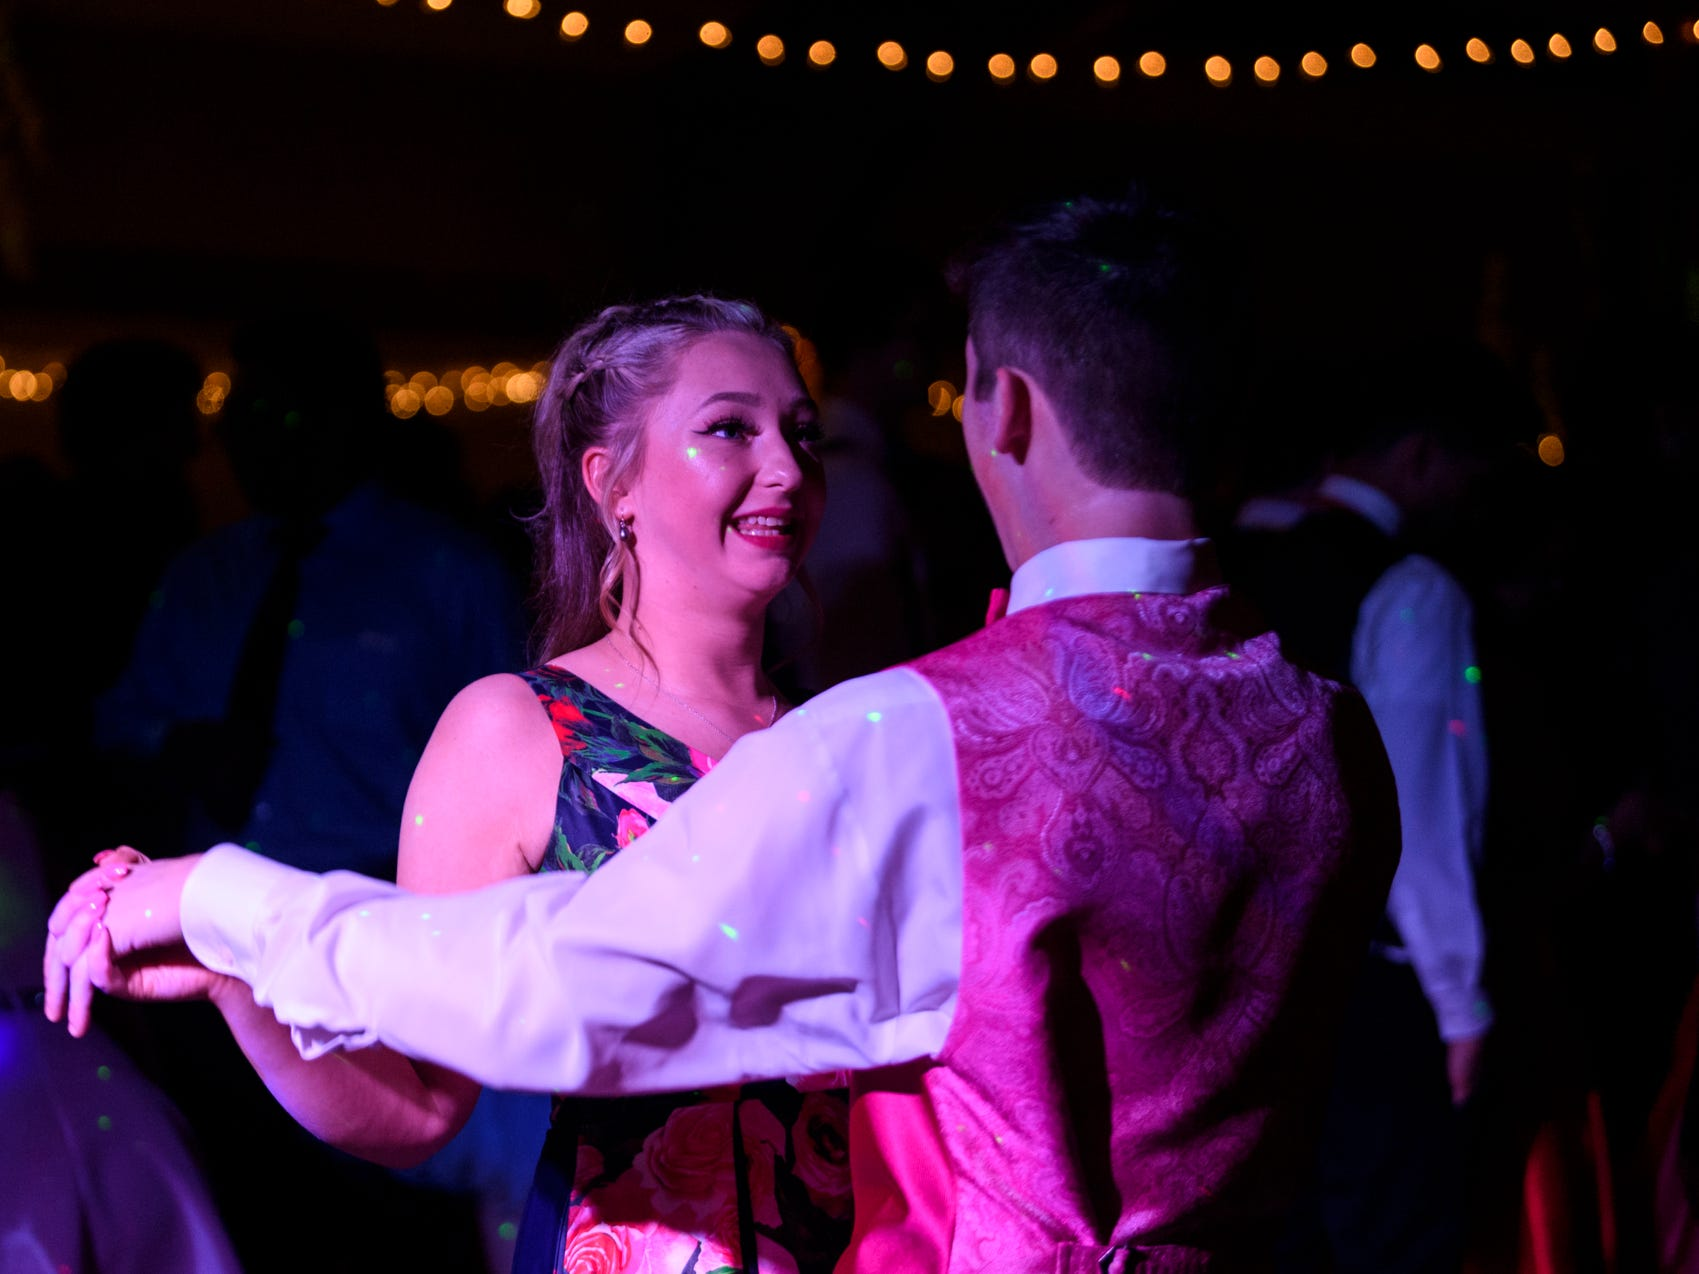 """Destiny Woods smiles as her date Jimmy Garris sings along to a song on the dance floor during Central High School's """"Uptown Night"""" themed prom held at the Vanderburgh 4-H Center auditorium in Evansville, Ind., Saturday, April 27, 2019."""